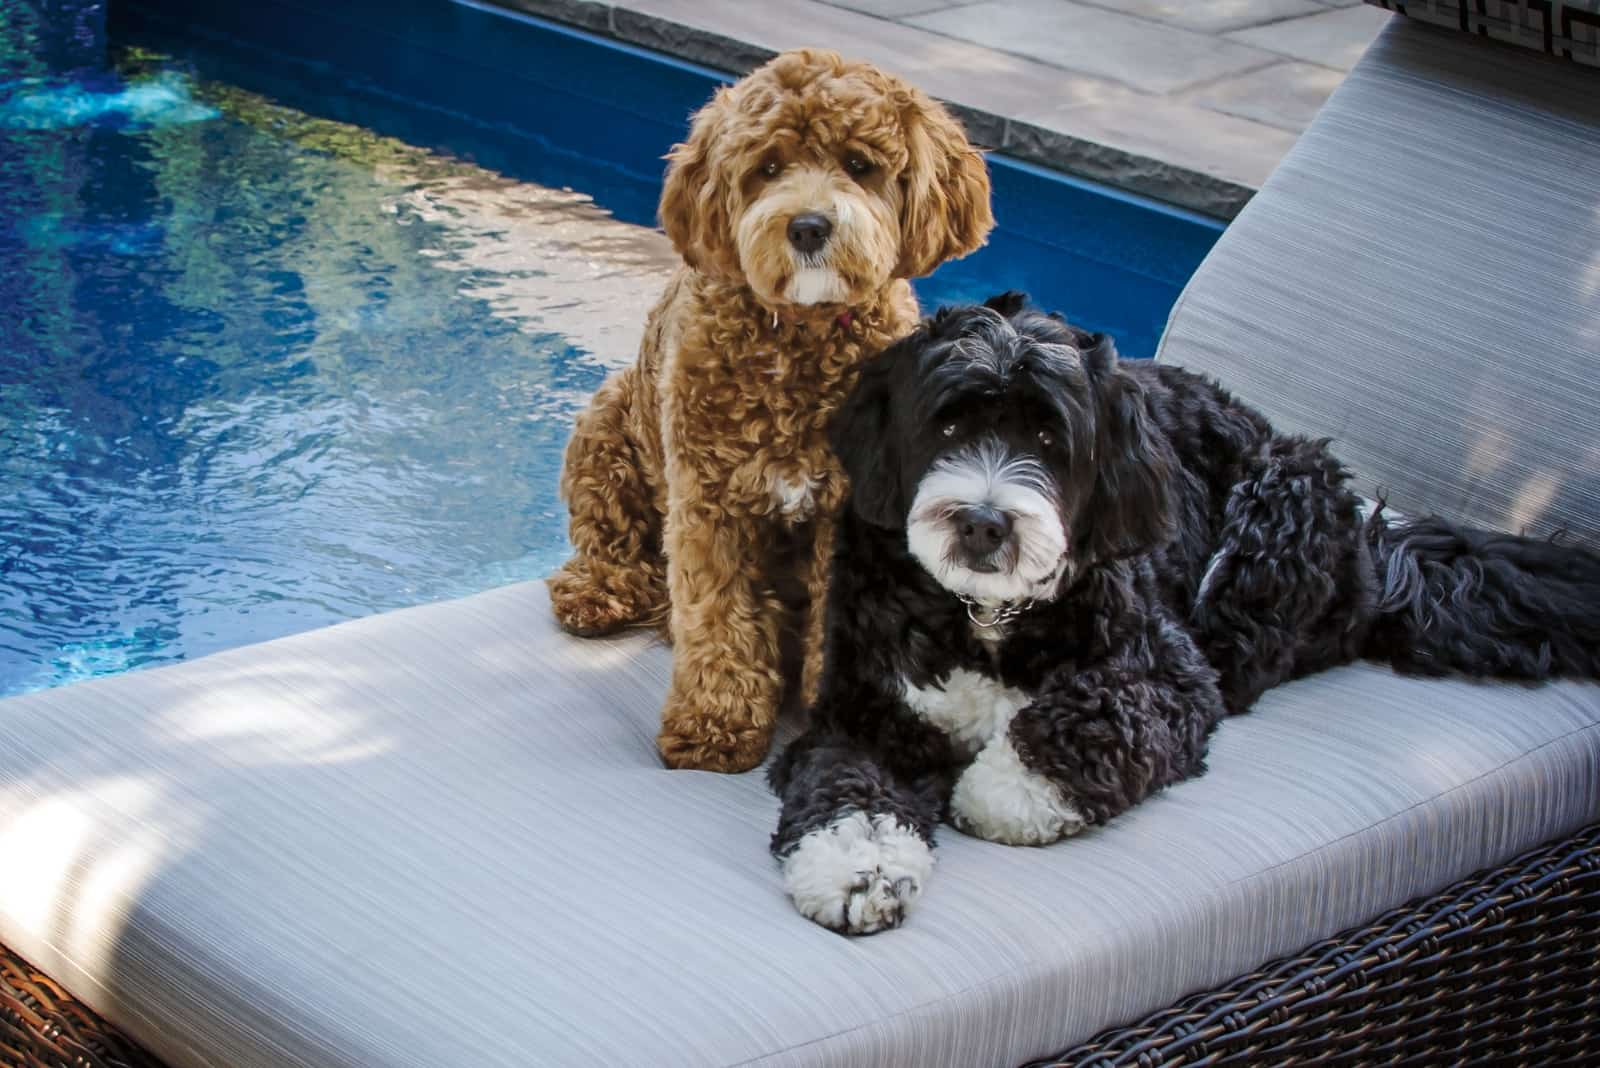 two bernadoodles sit on a lounger by the pool